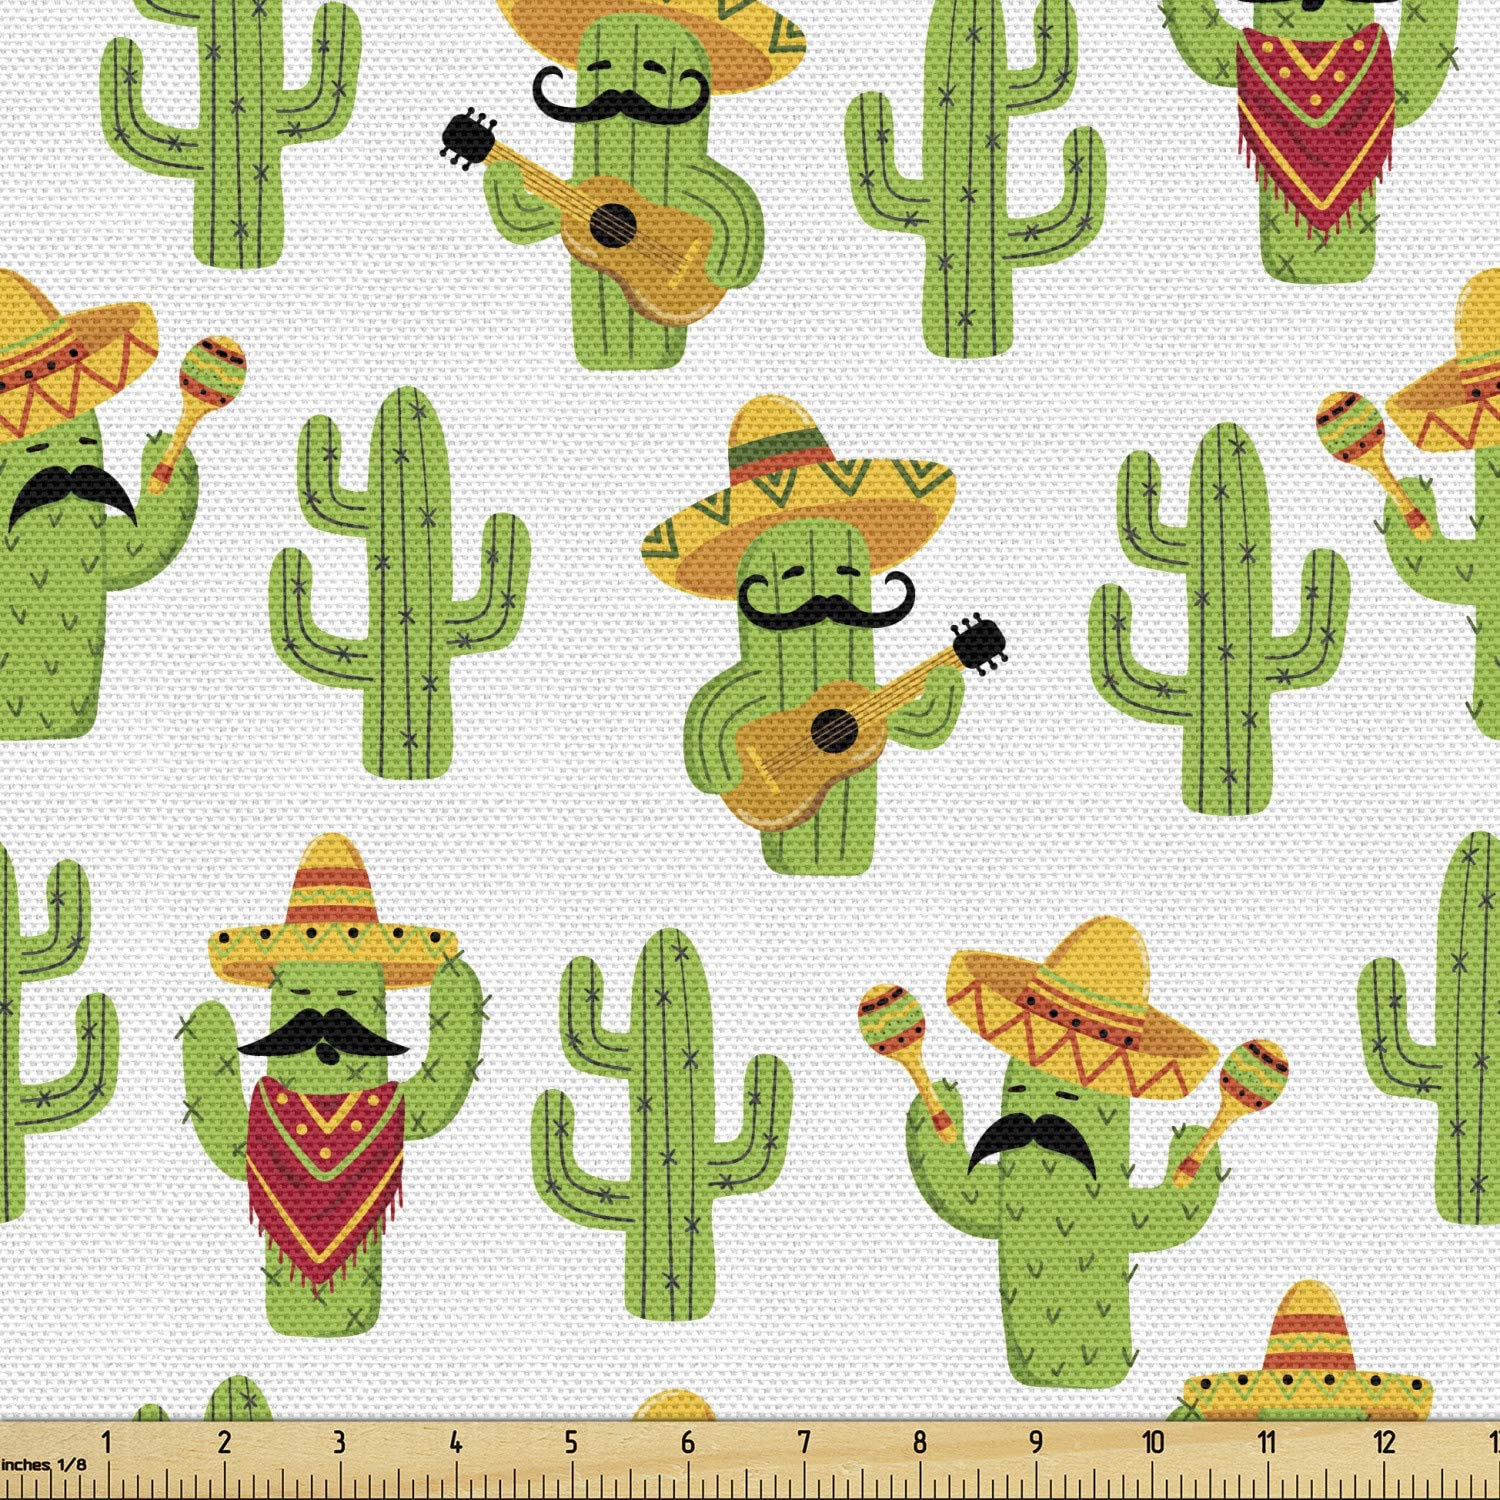 Ambesonne Cinco de Mayo Fabric by The Yard, Funny Mexican Cactus Characters, Decorative Fabric for Upholstery and Home Accents, 2 Yards, Lime Green